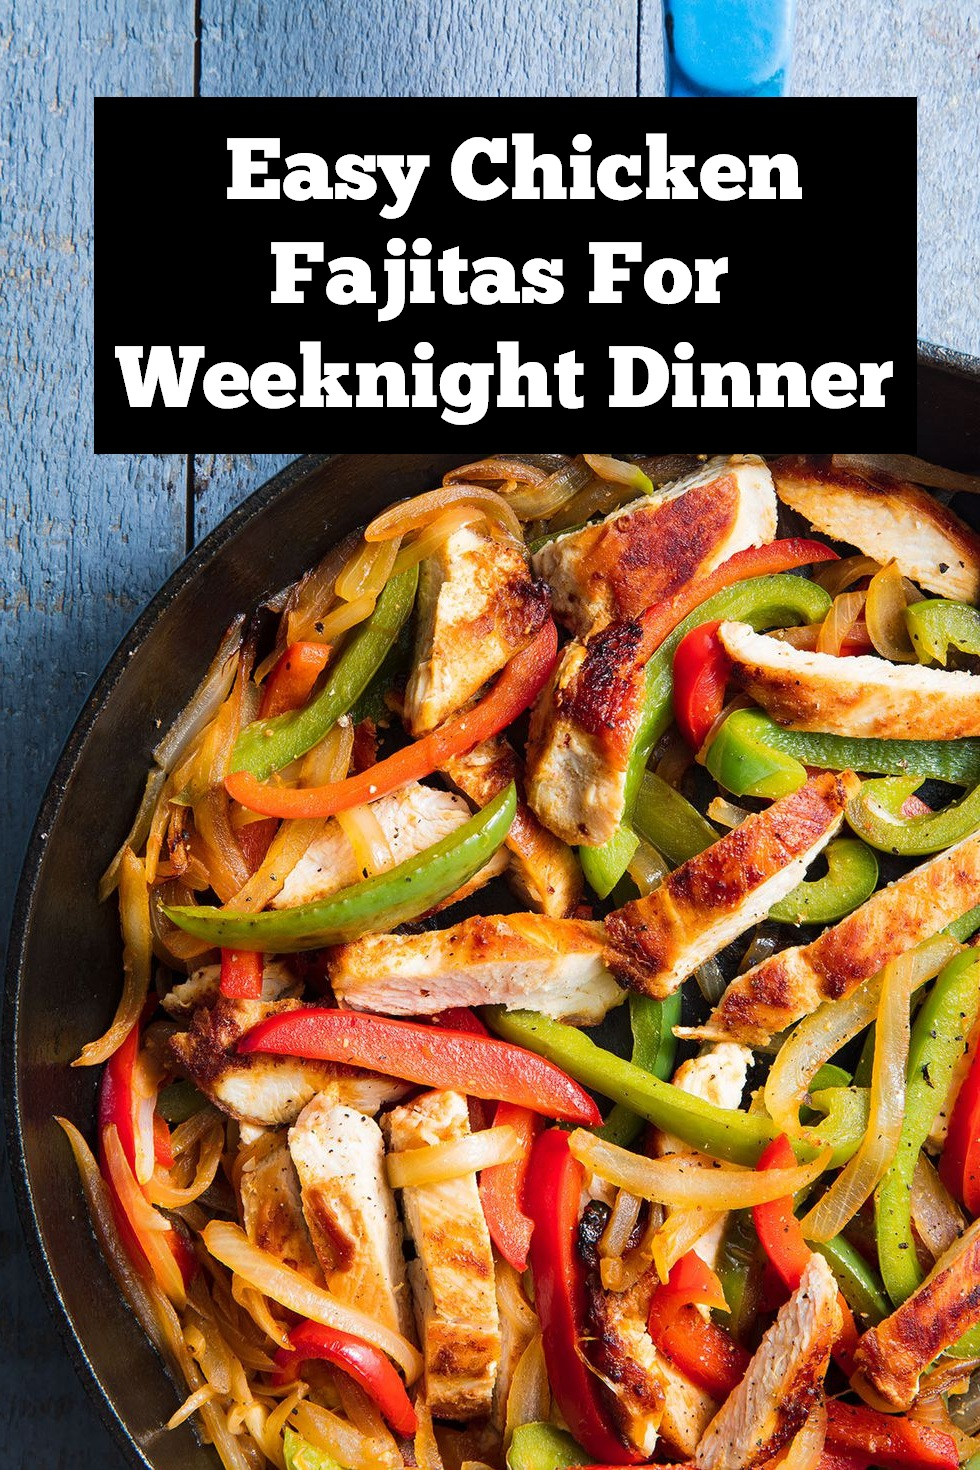 Easy Chicken Fajitas for Weeknight Dinner | Easy Chicken Fajitas Recipe | Chicken recipe | Easy Dinner Recipe | Chicken Dinner Recipe | Weeknight Dinner Recipe #dinner #chicken #fajitas #chickenfajitas #easychickenfajitas #easychickenrecipe #dinnerrecipe #easymeals #easydinnerrecipe